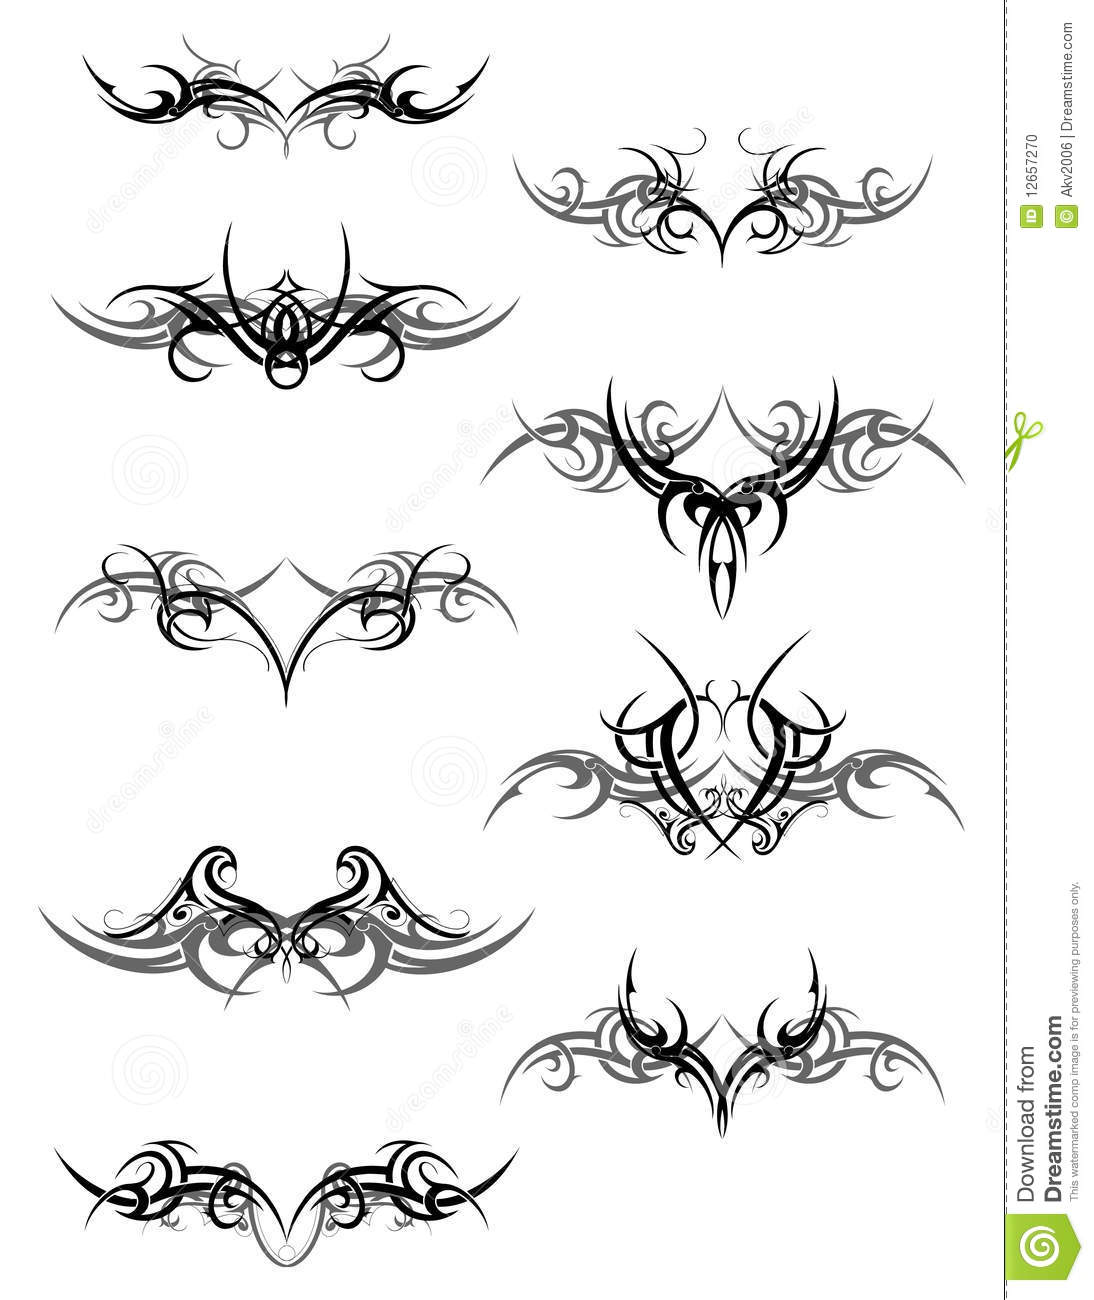 tribal art design stock photo image 12657270